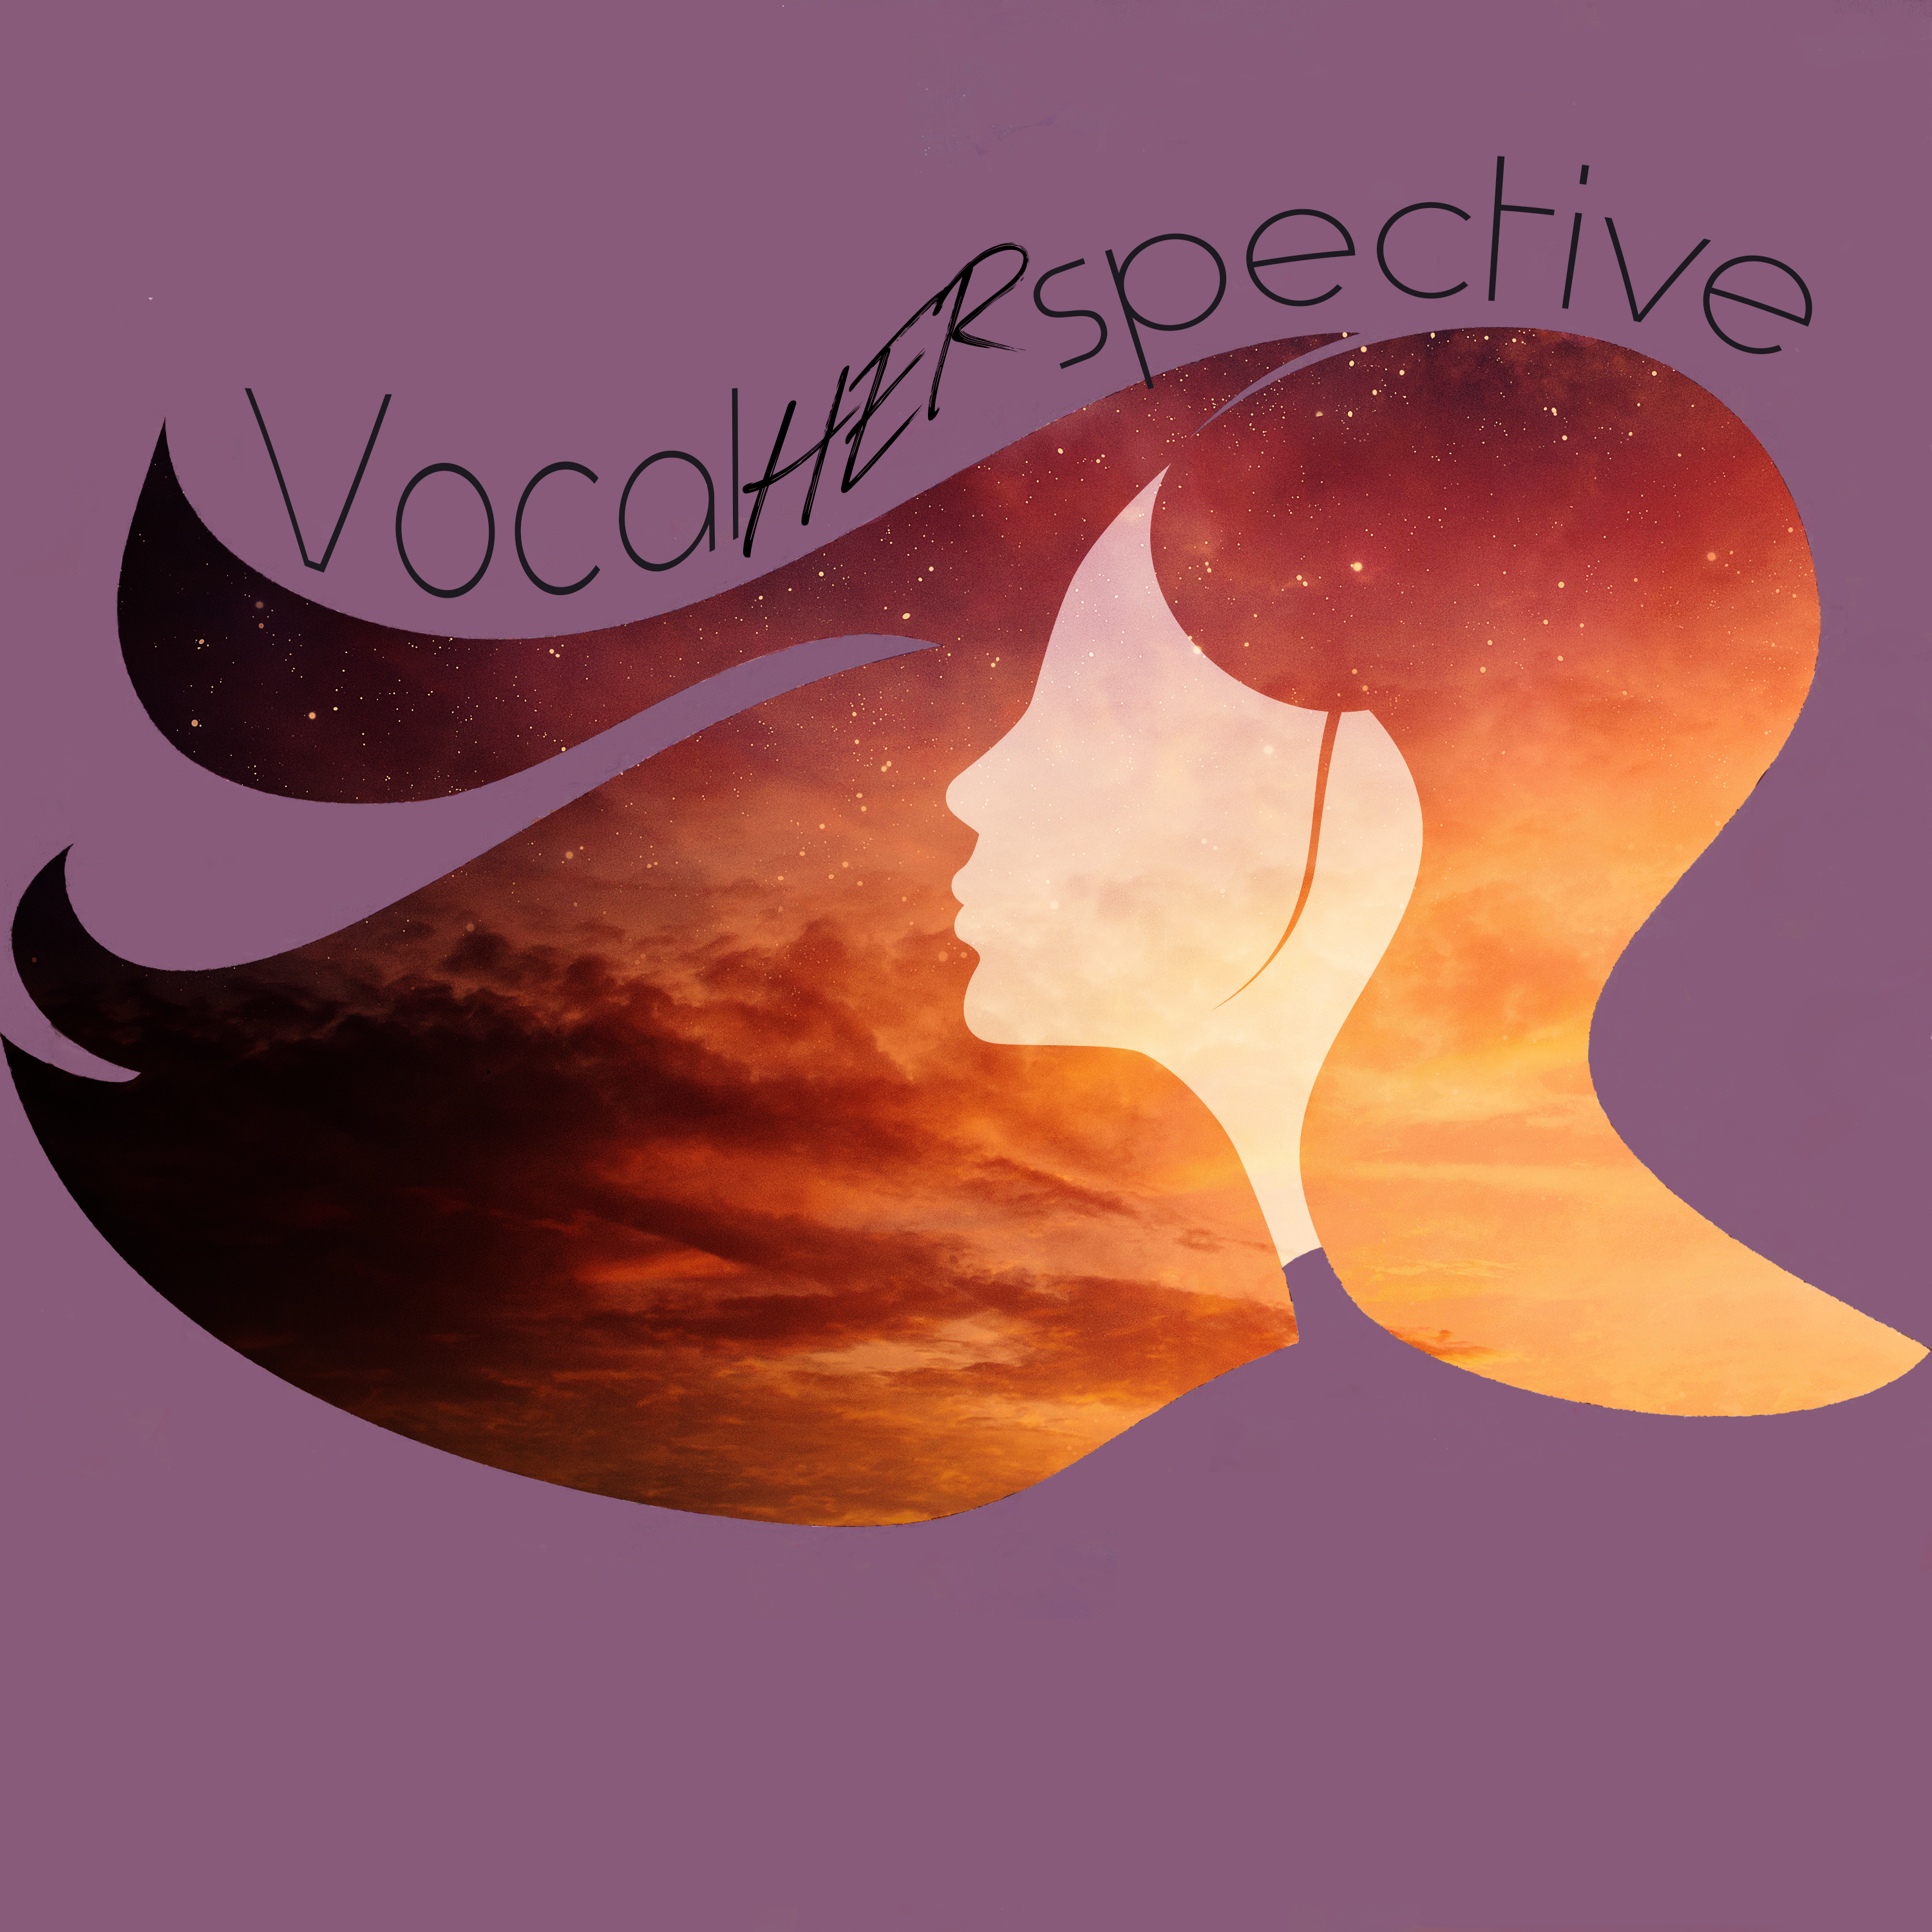 Vocal HERSpective